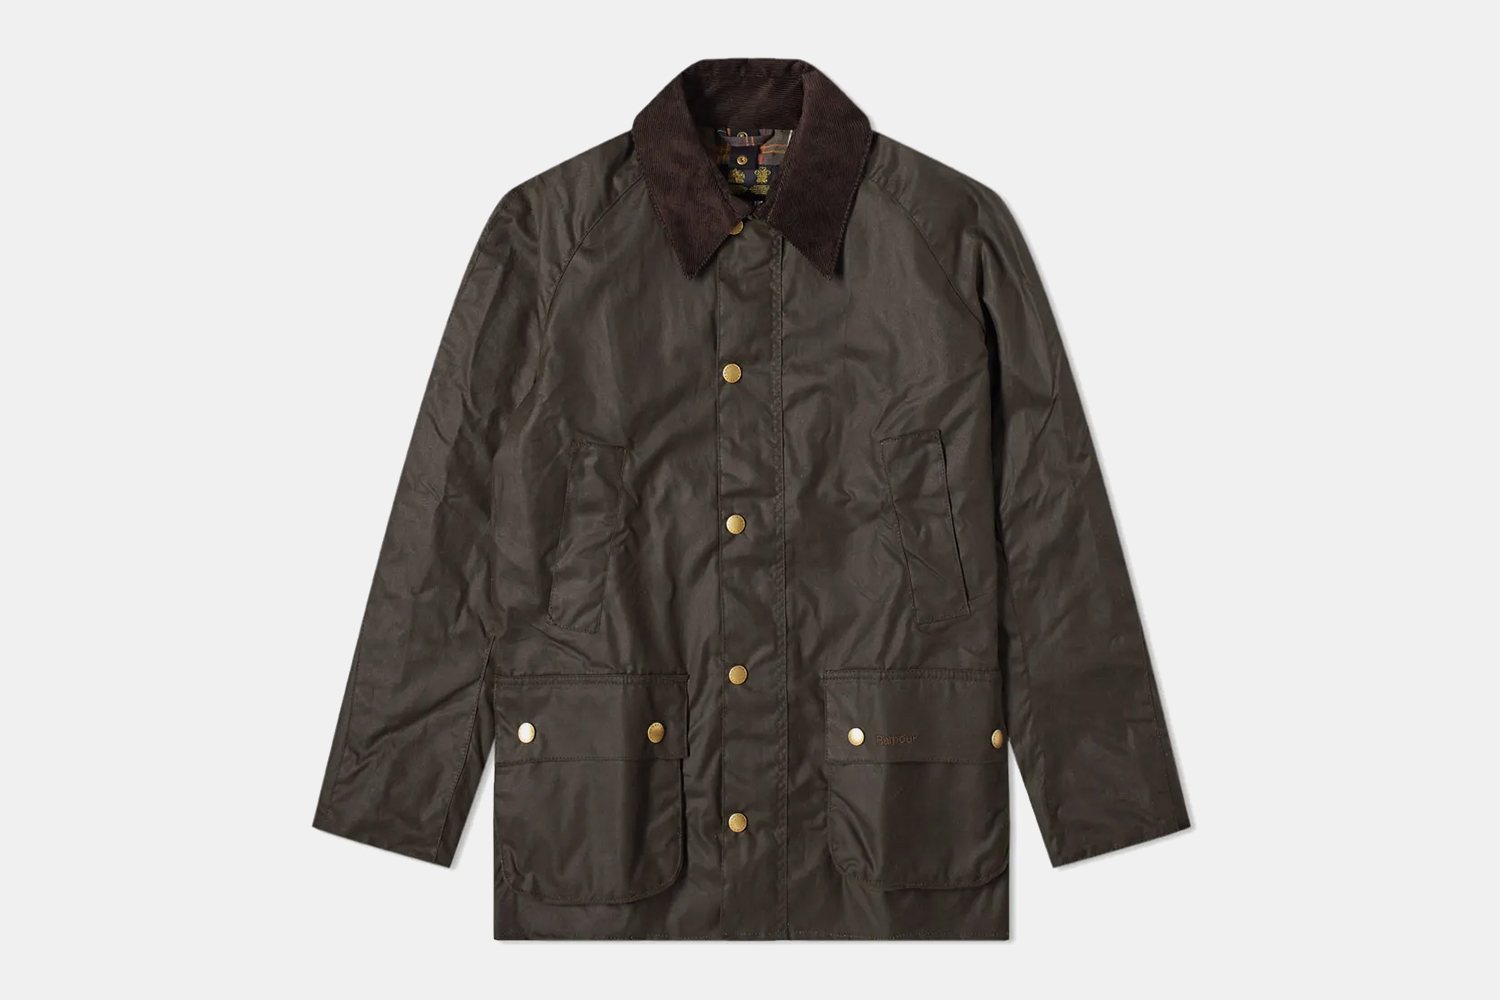 Deal: This Classic Barbour Jacket Is $250 Off